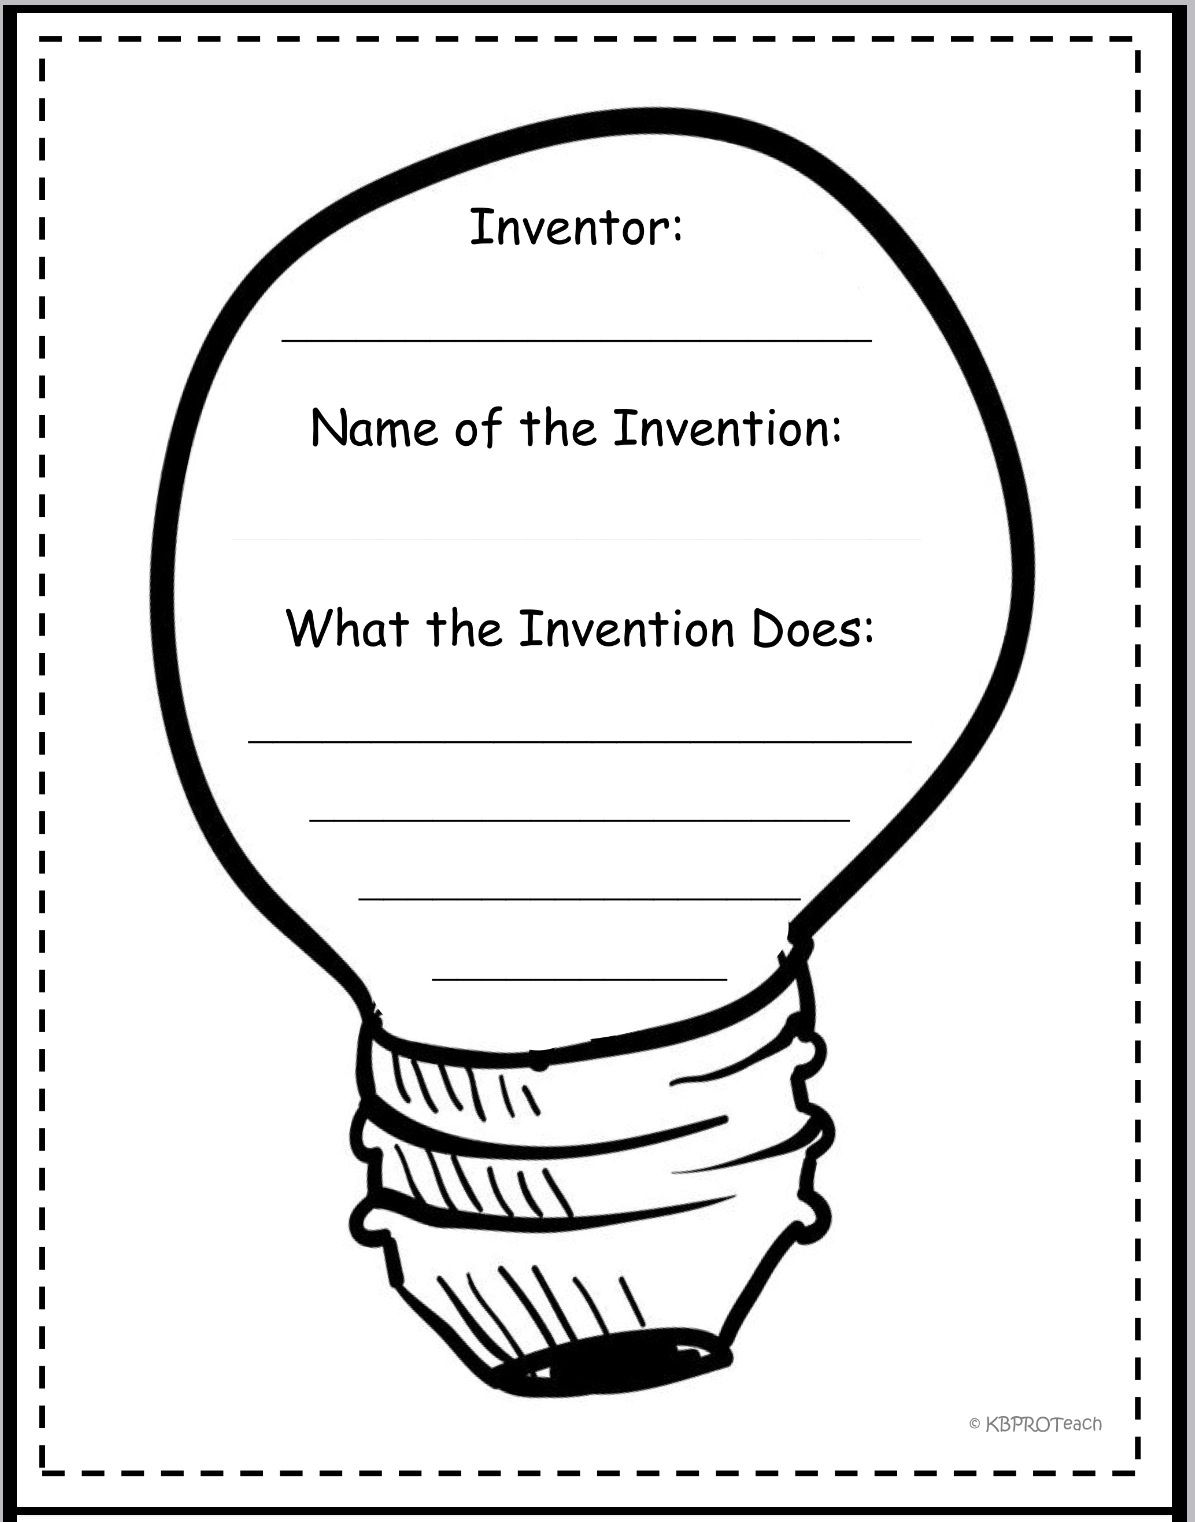 freebie** graphic organizers (inventions / story elements: setting